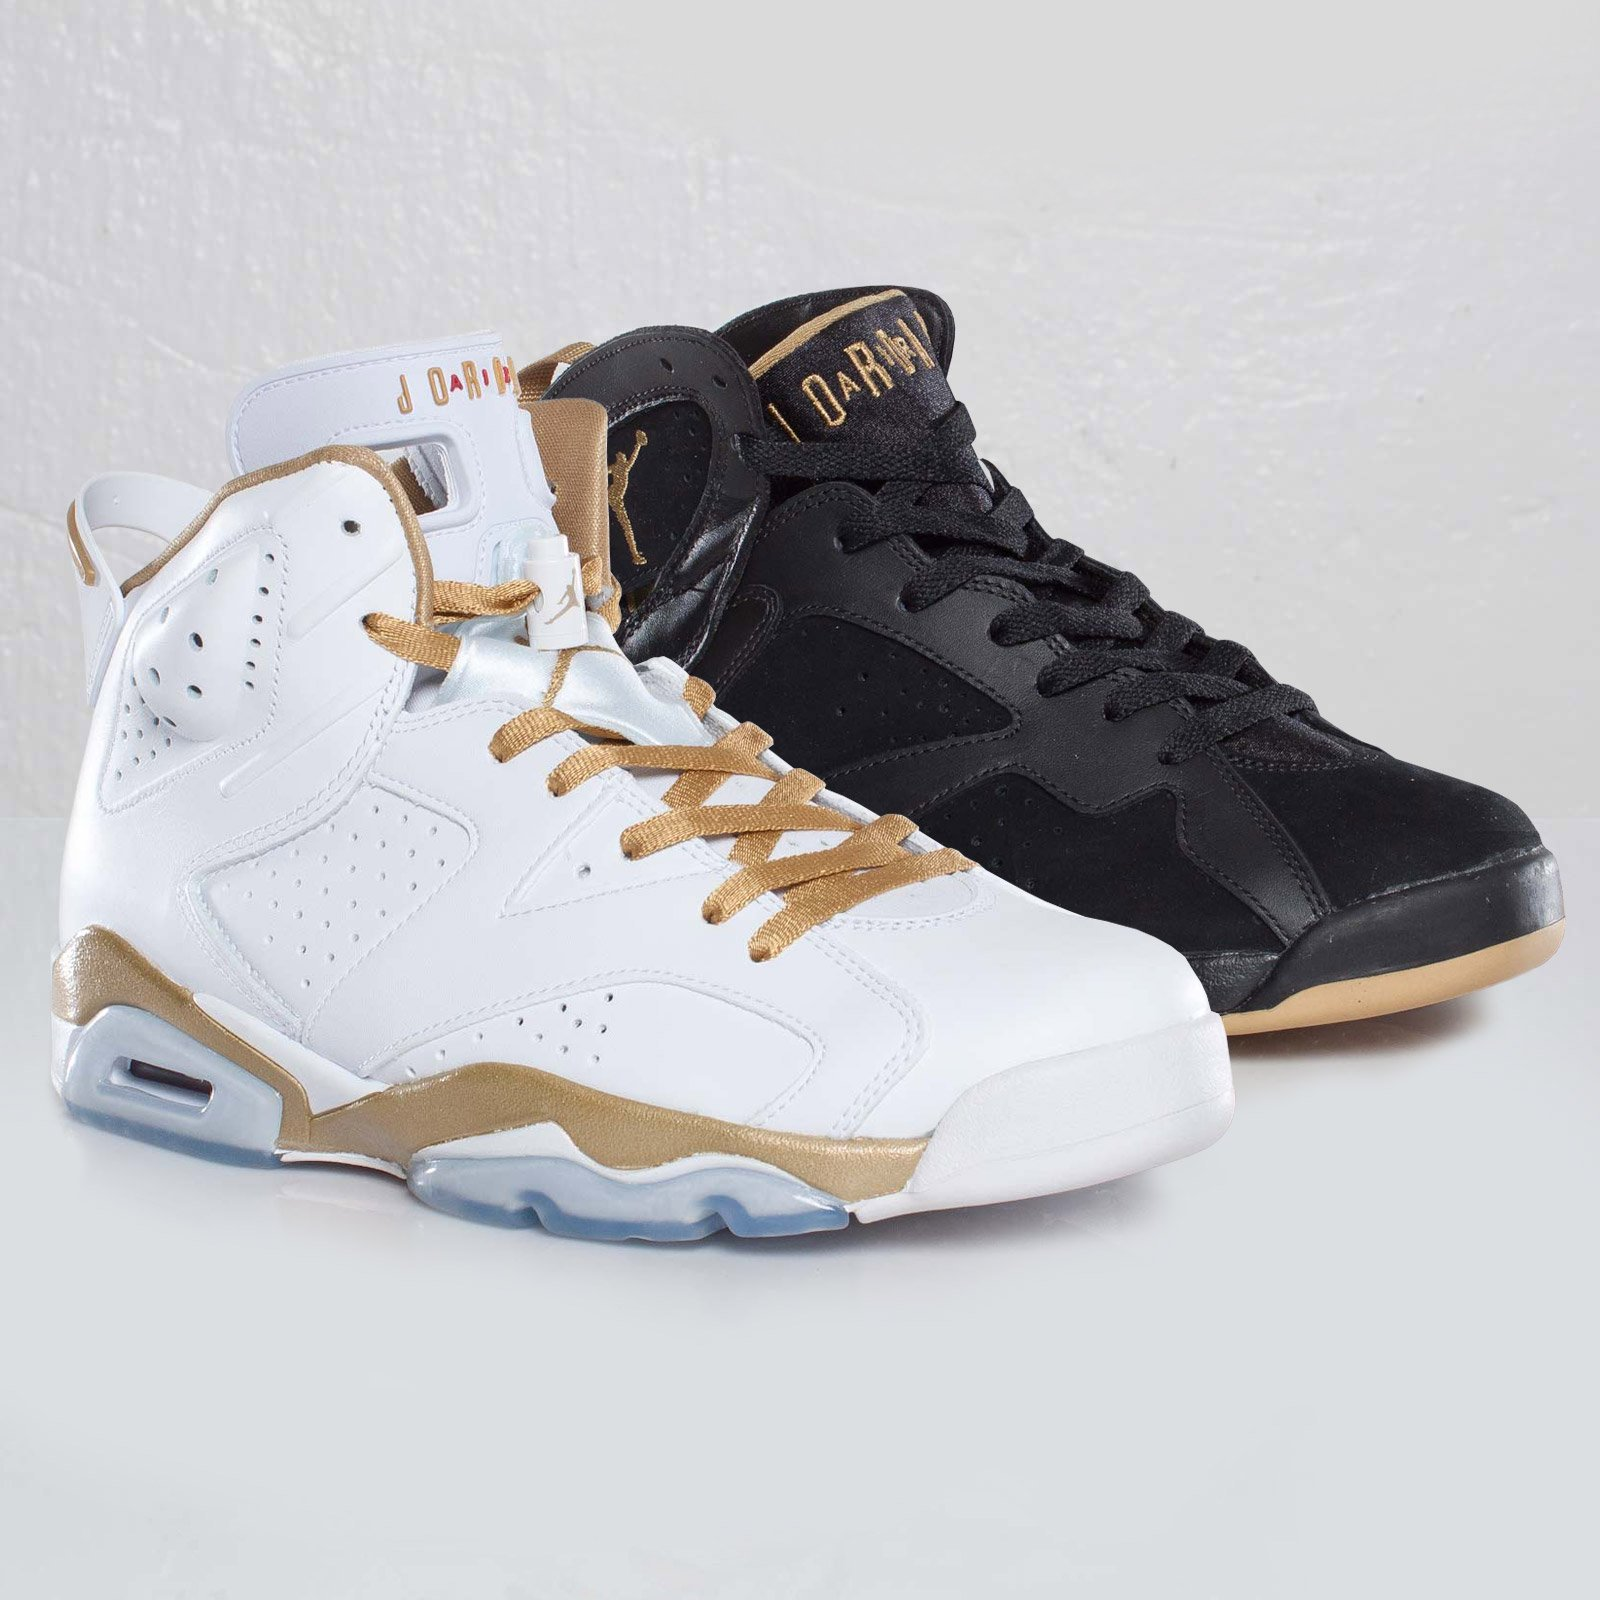 the best attitude f1a24 dc31c Jordan Brand Golden Moments Pack